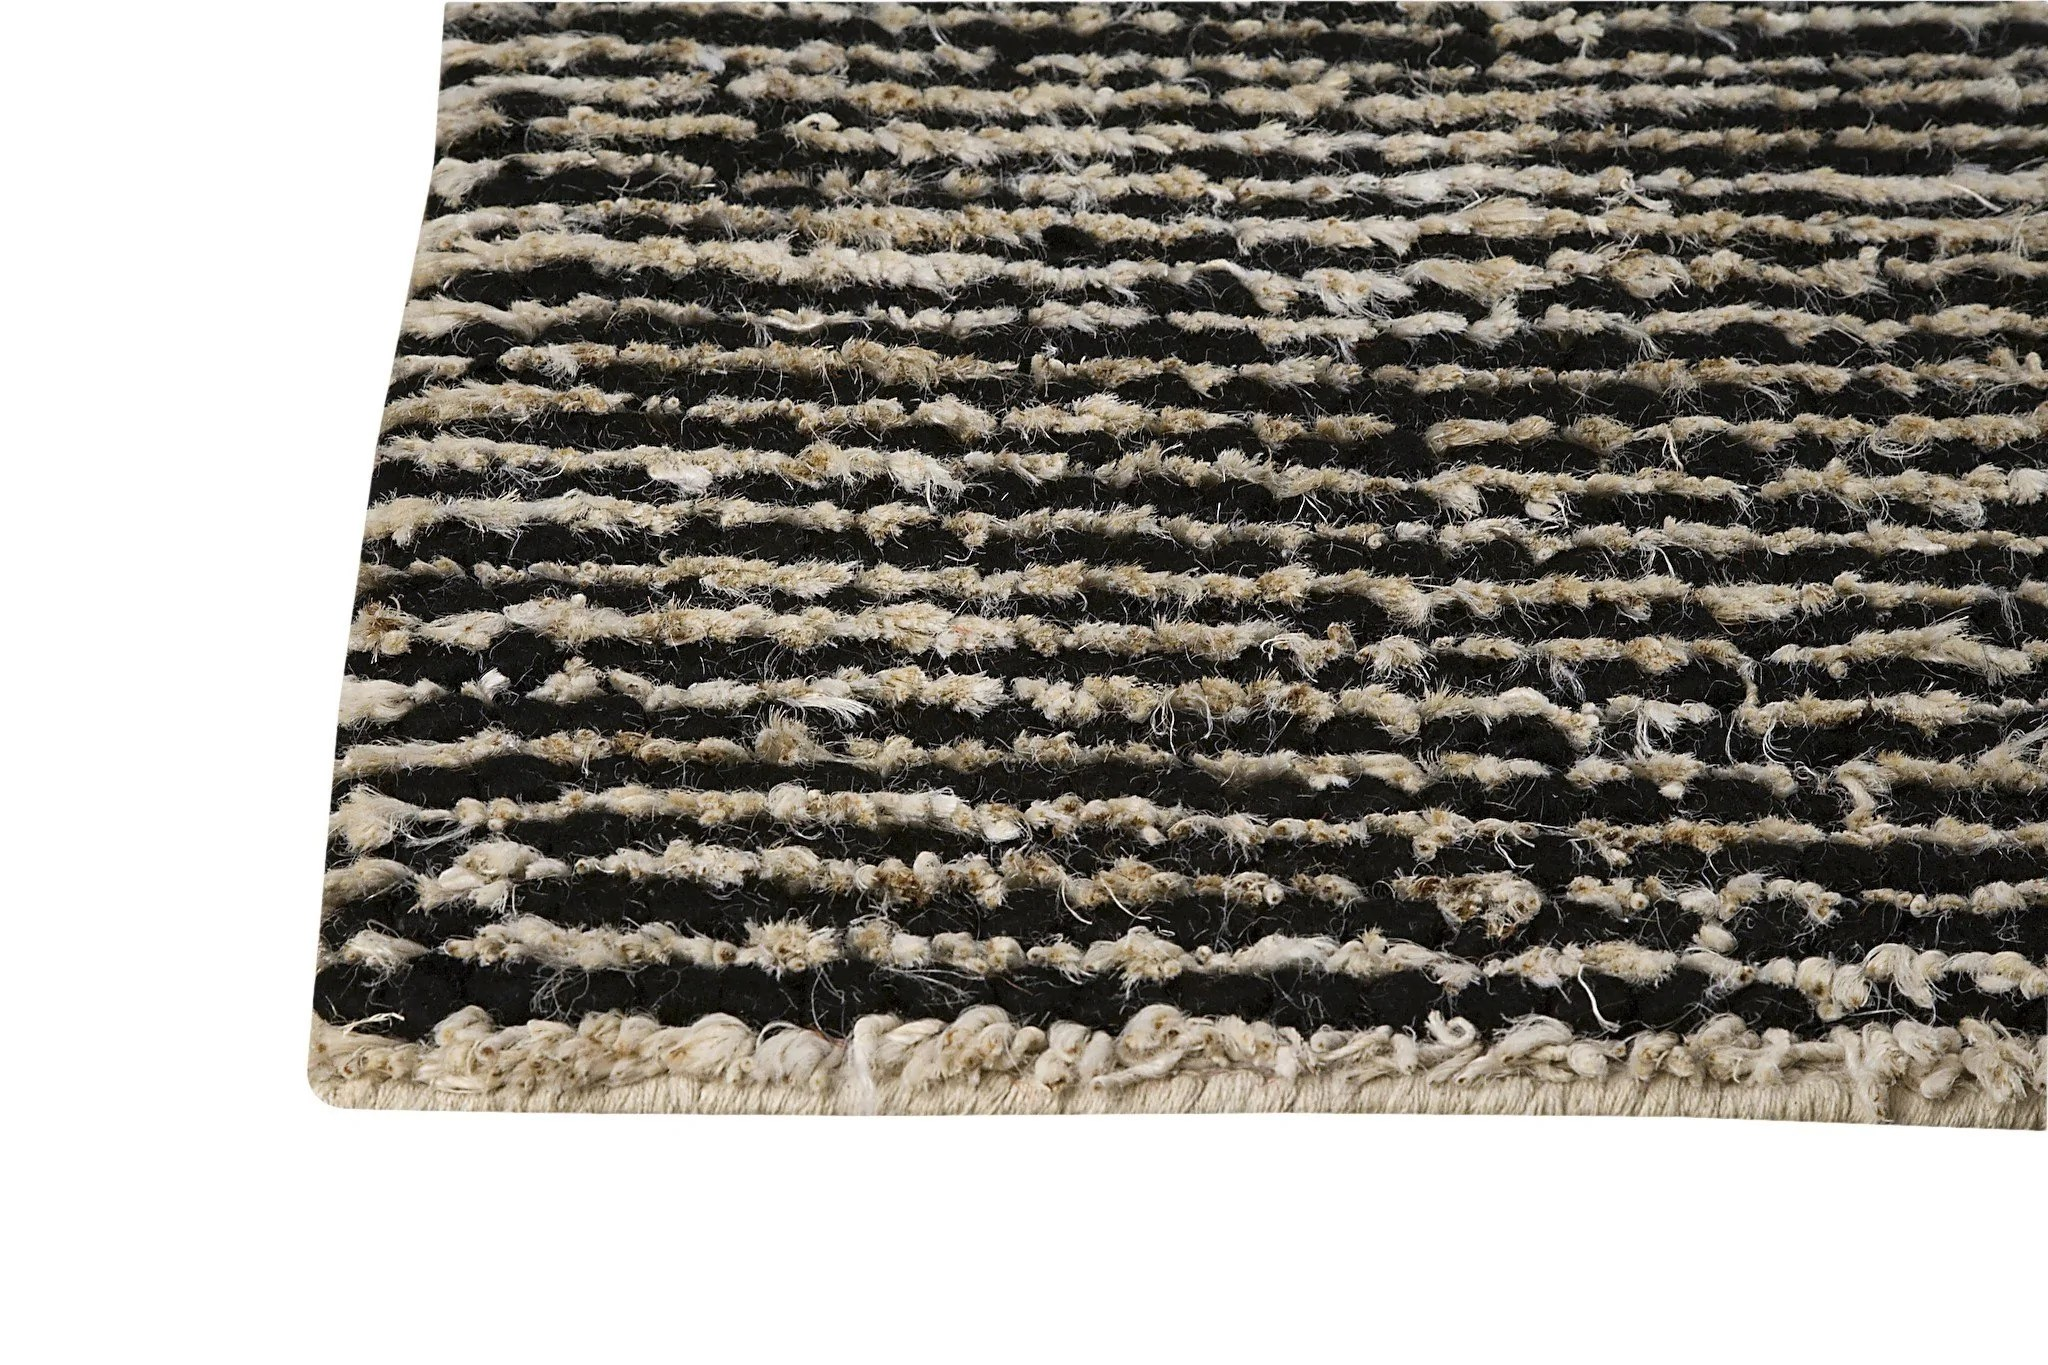 Nature Collection Hand Woven Wool And Hemp Area Rug In Black And White Burke Decor